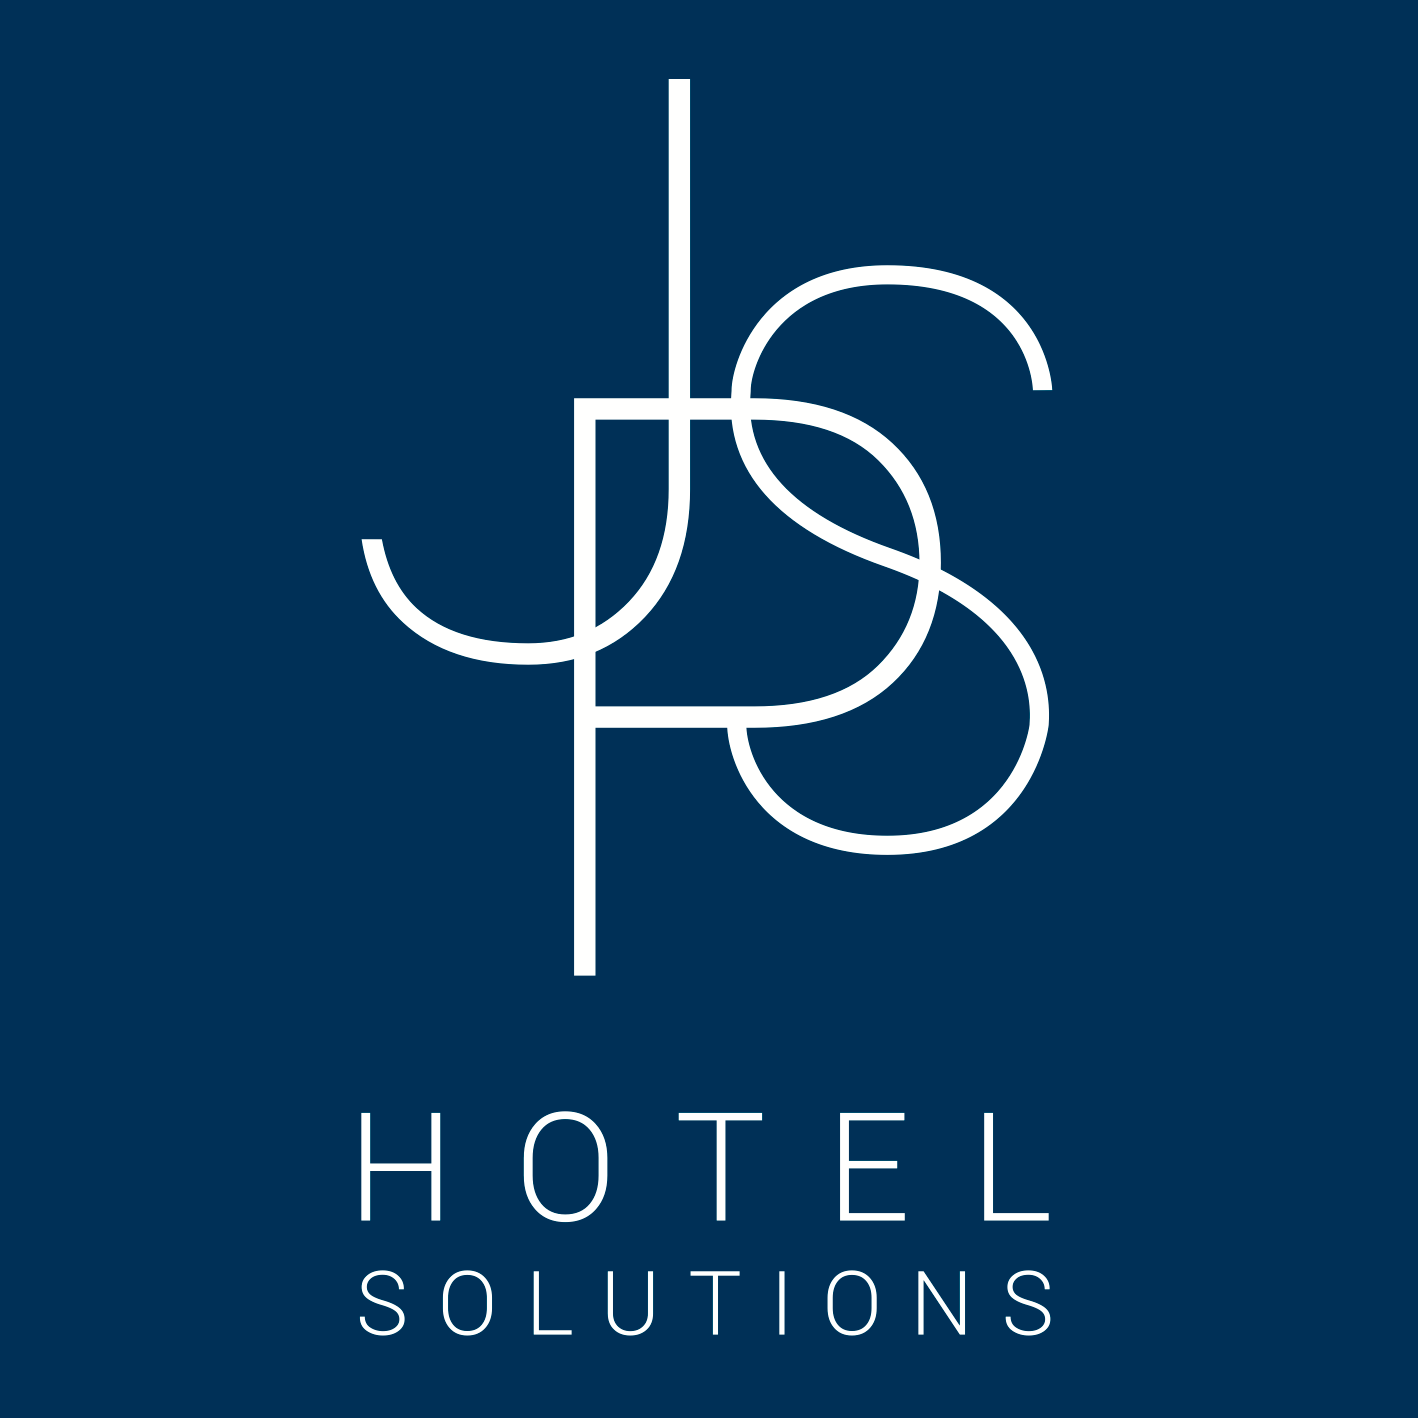 JPS Hôtel Solutions ✪New Exhibitor